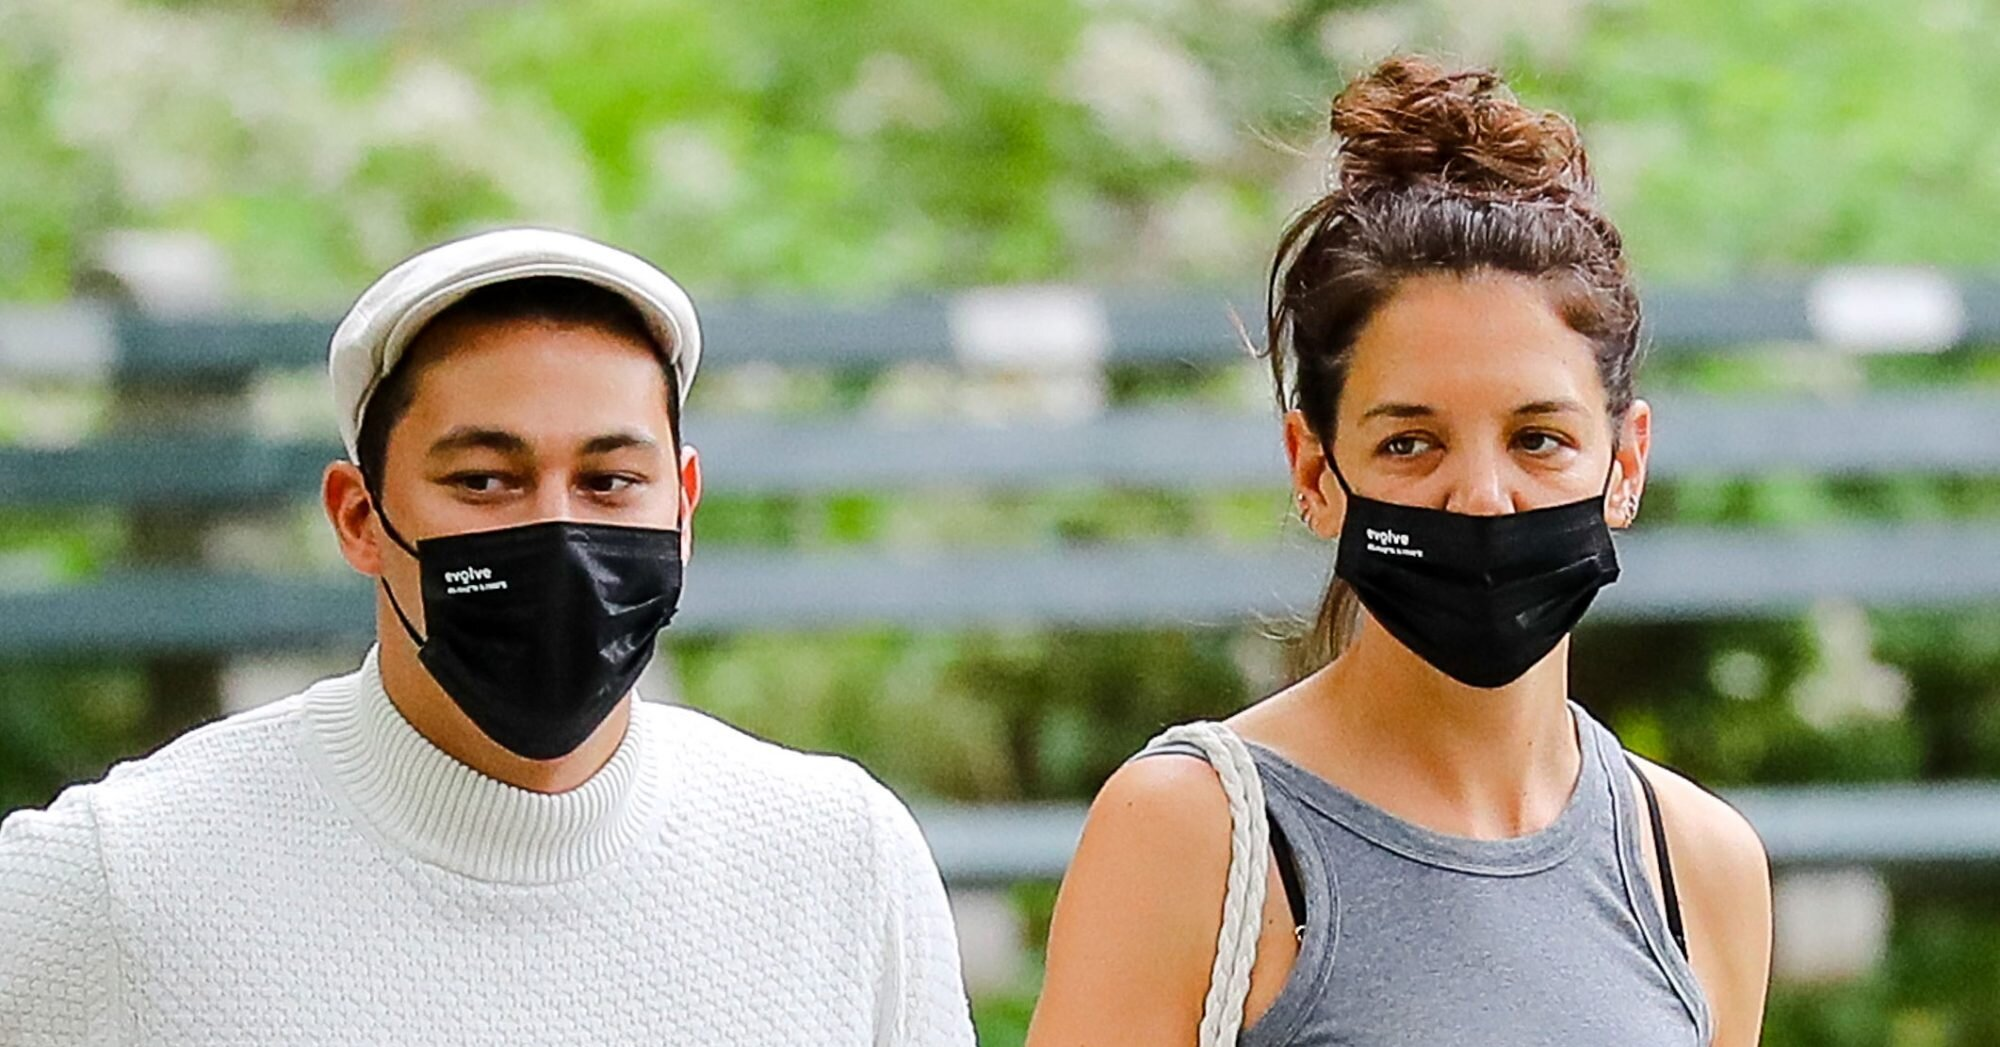 Katie Holmes and Her New Boyfriend Are at the 'Matching Face Masks' Relationship Stage